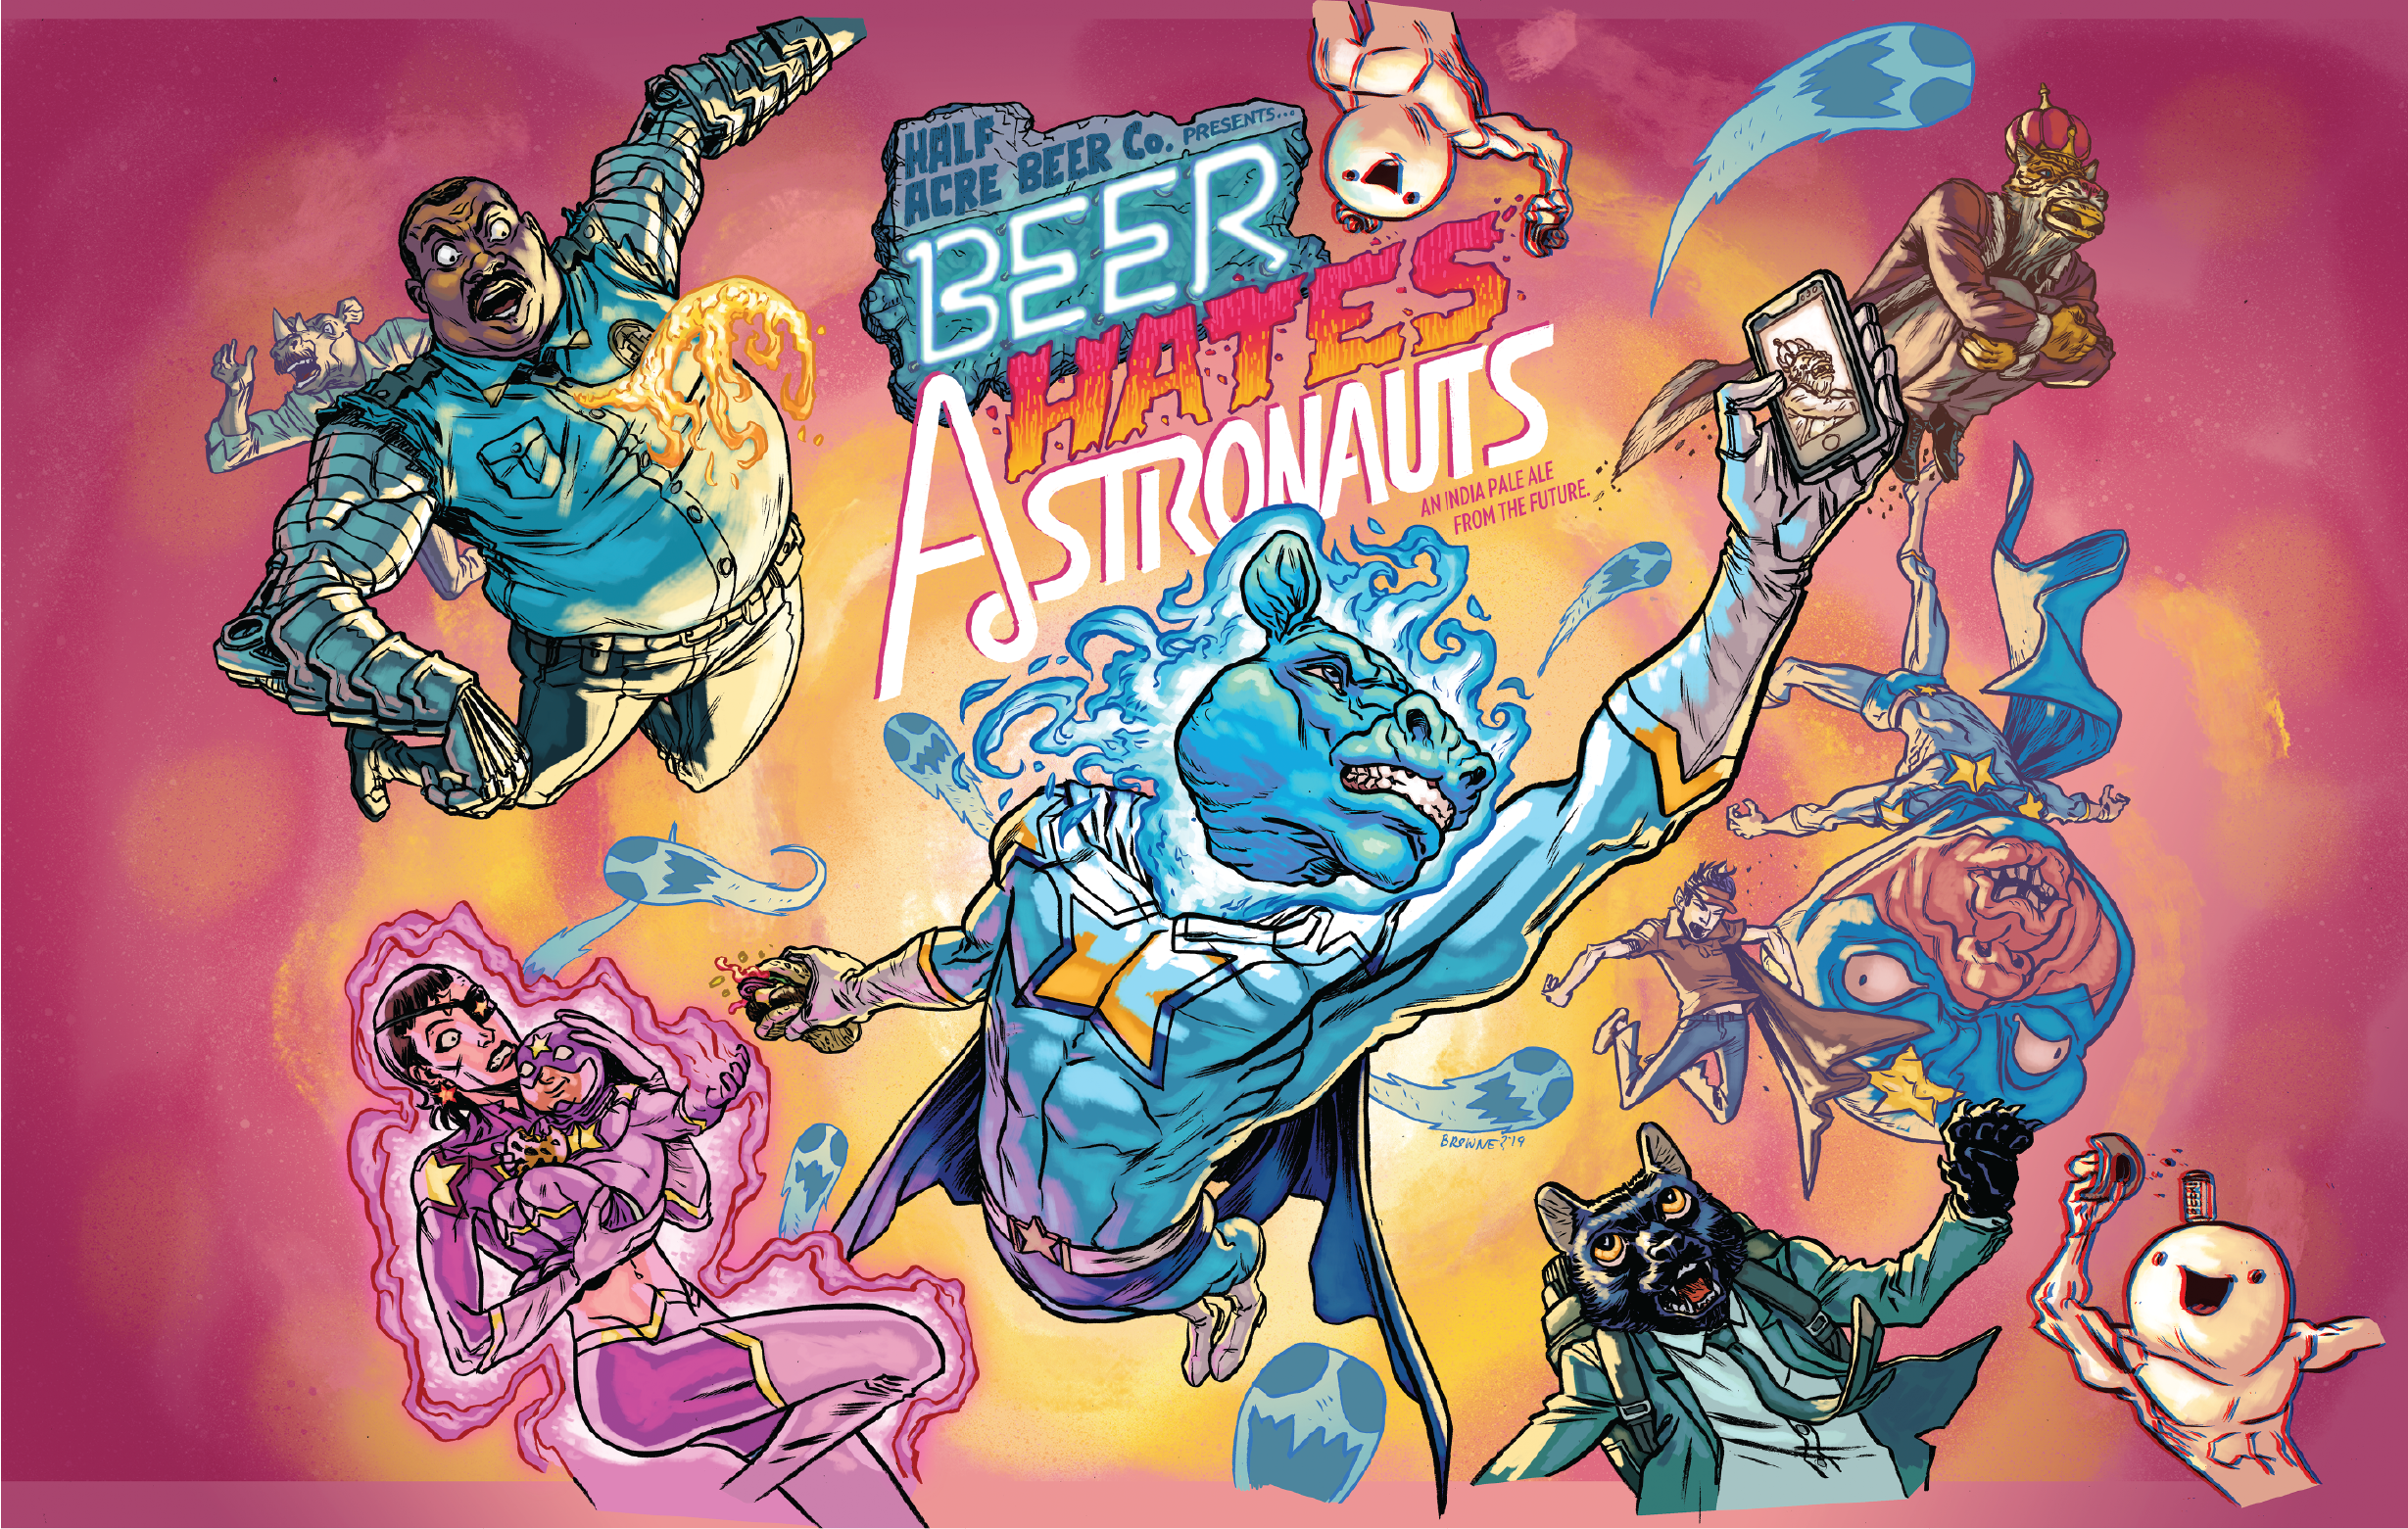 Beer_Hates_Astronauts_web.png